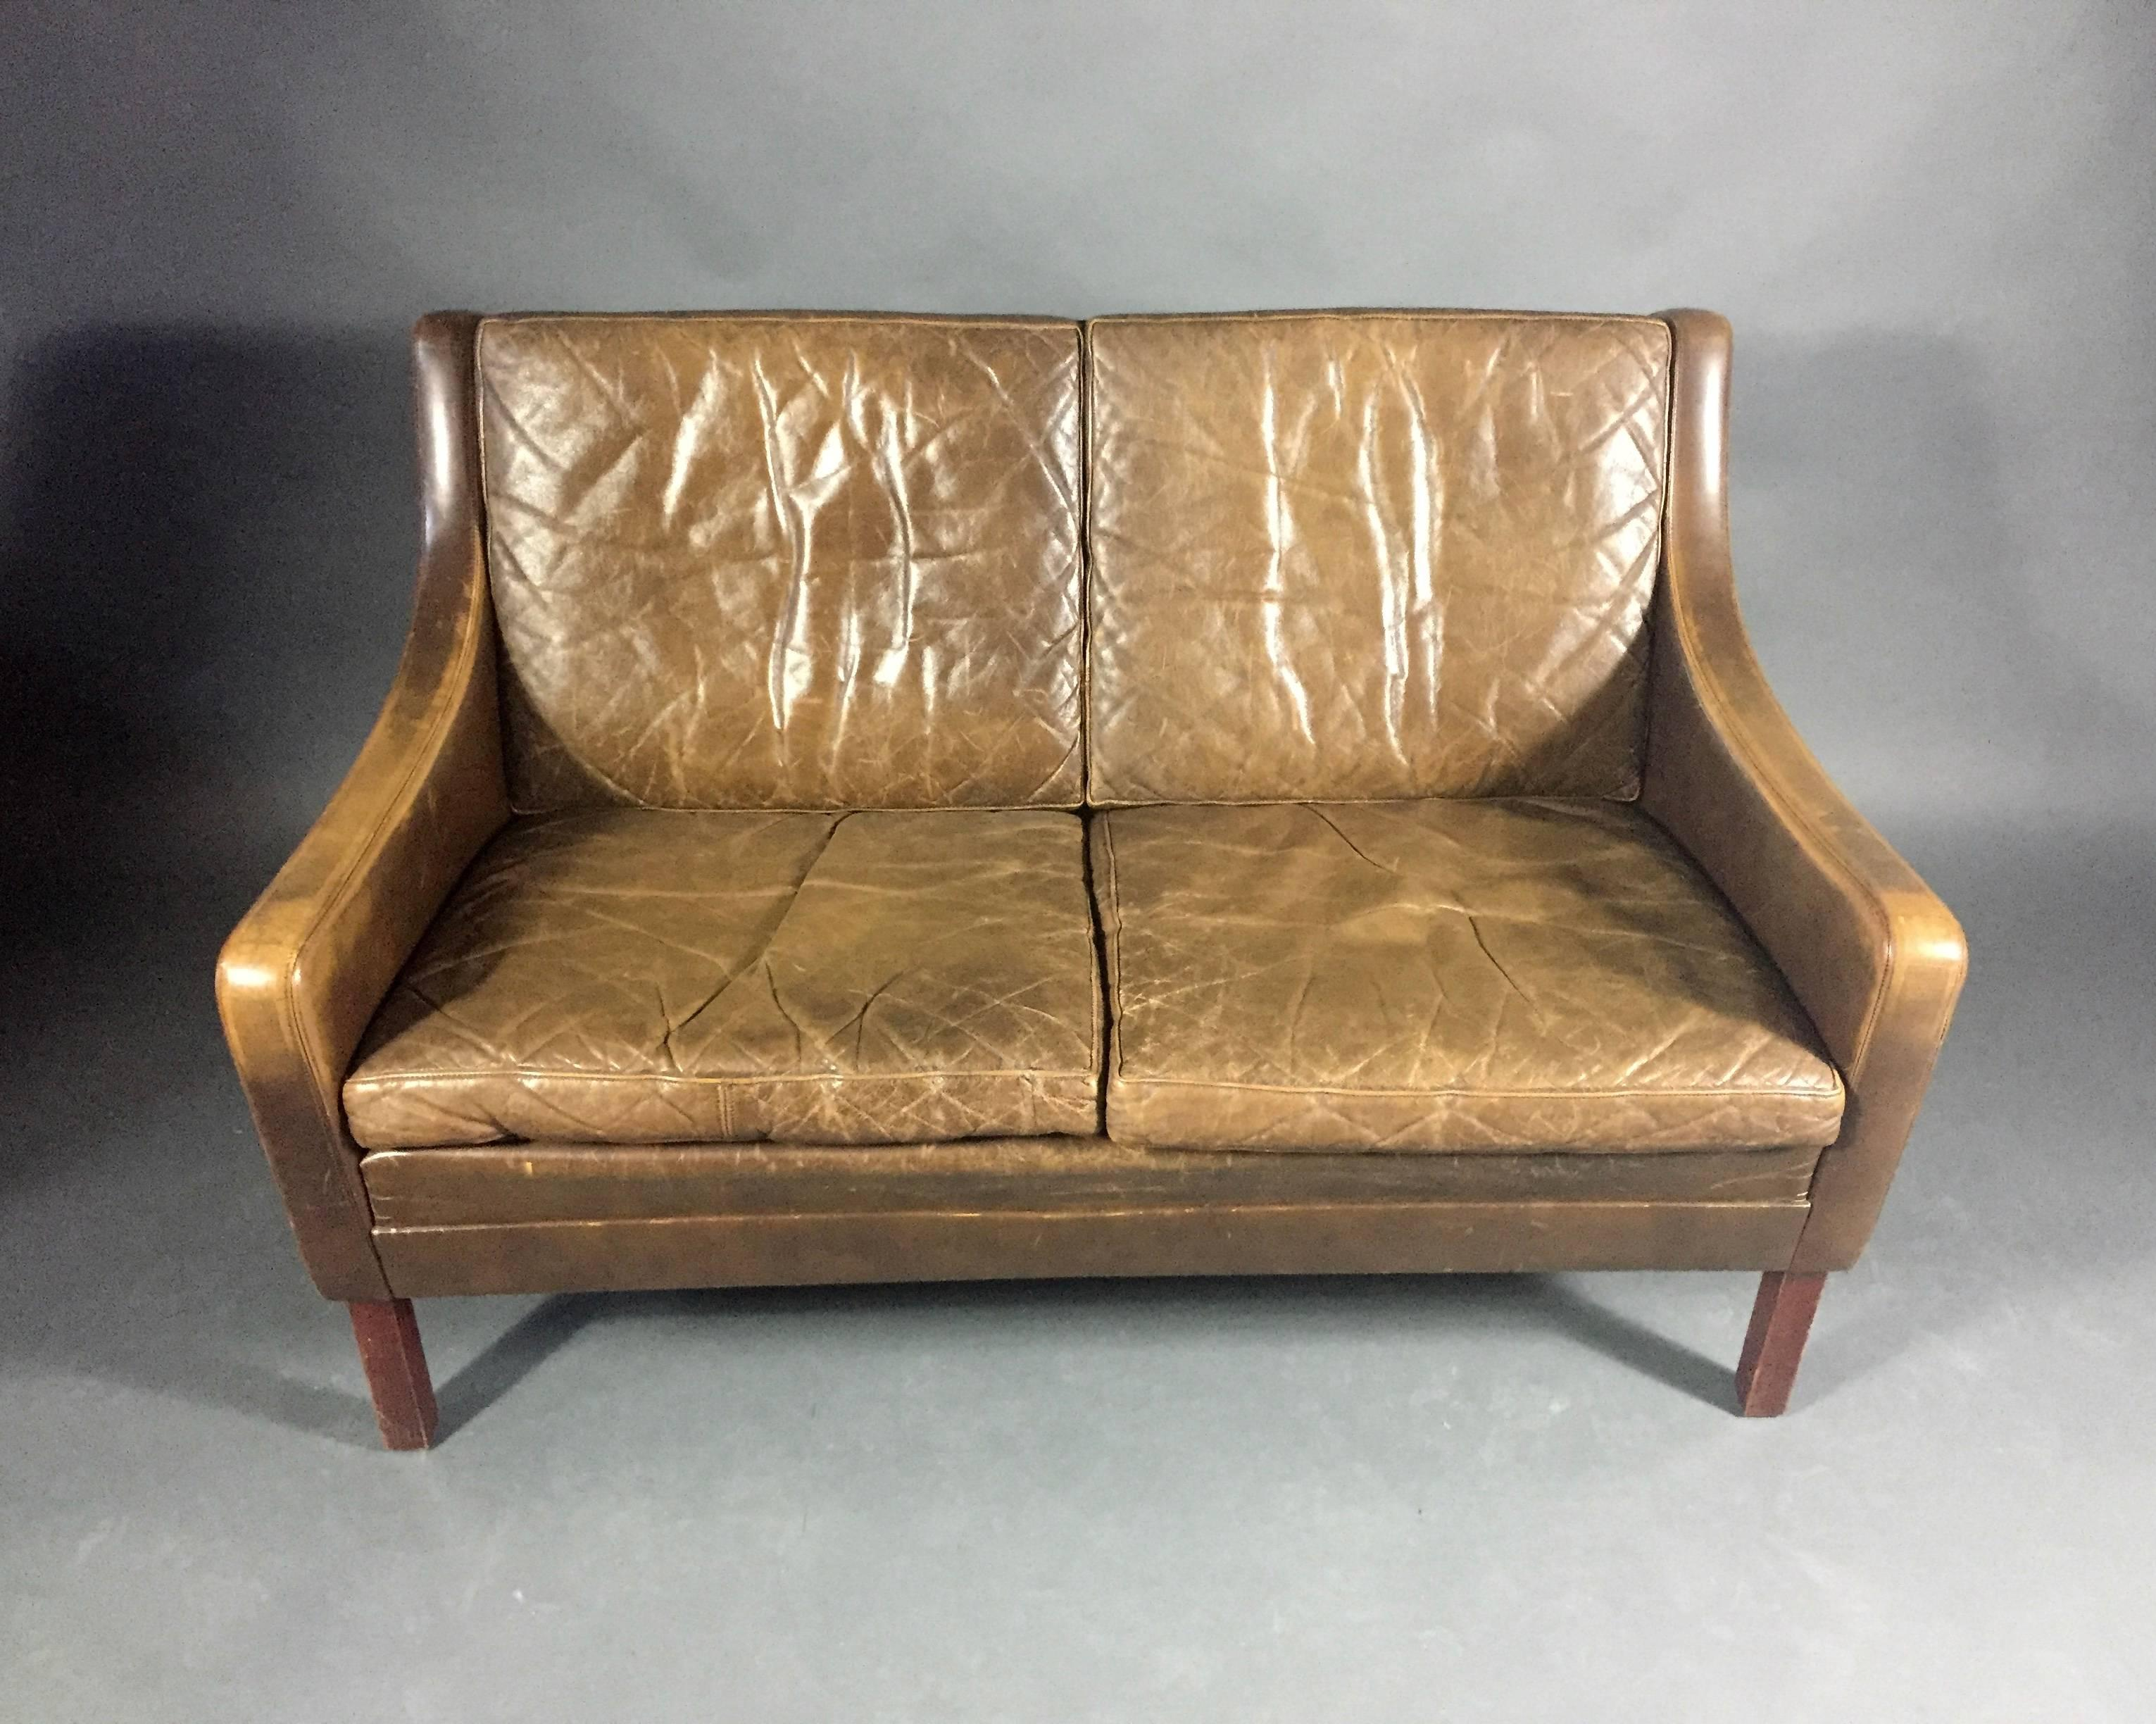 mogensen chairish borge for sofa chair fredericia cognac leather modern model product danish